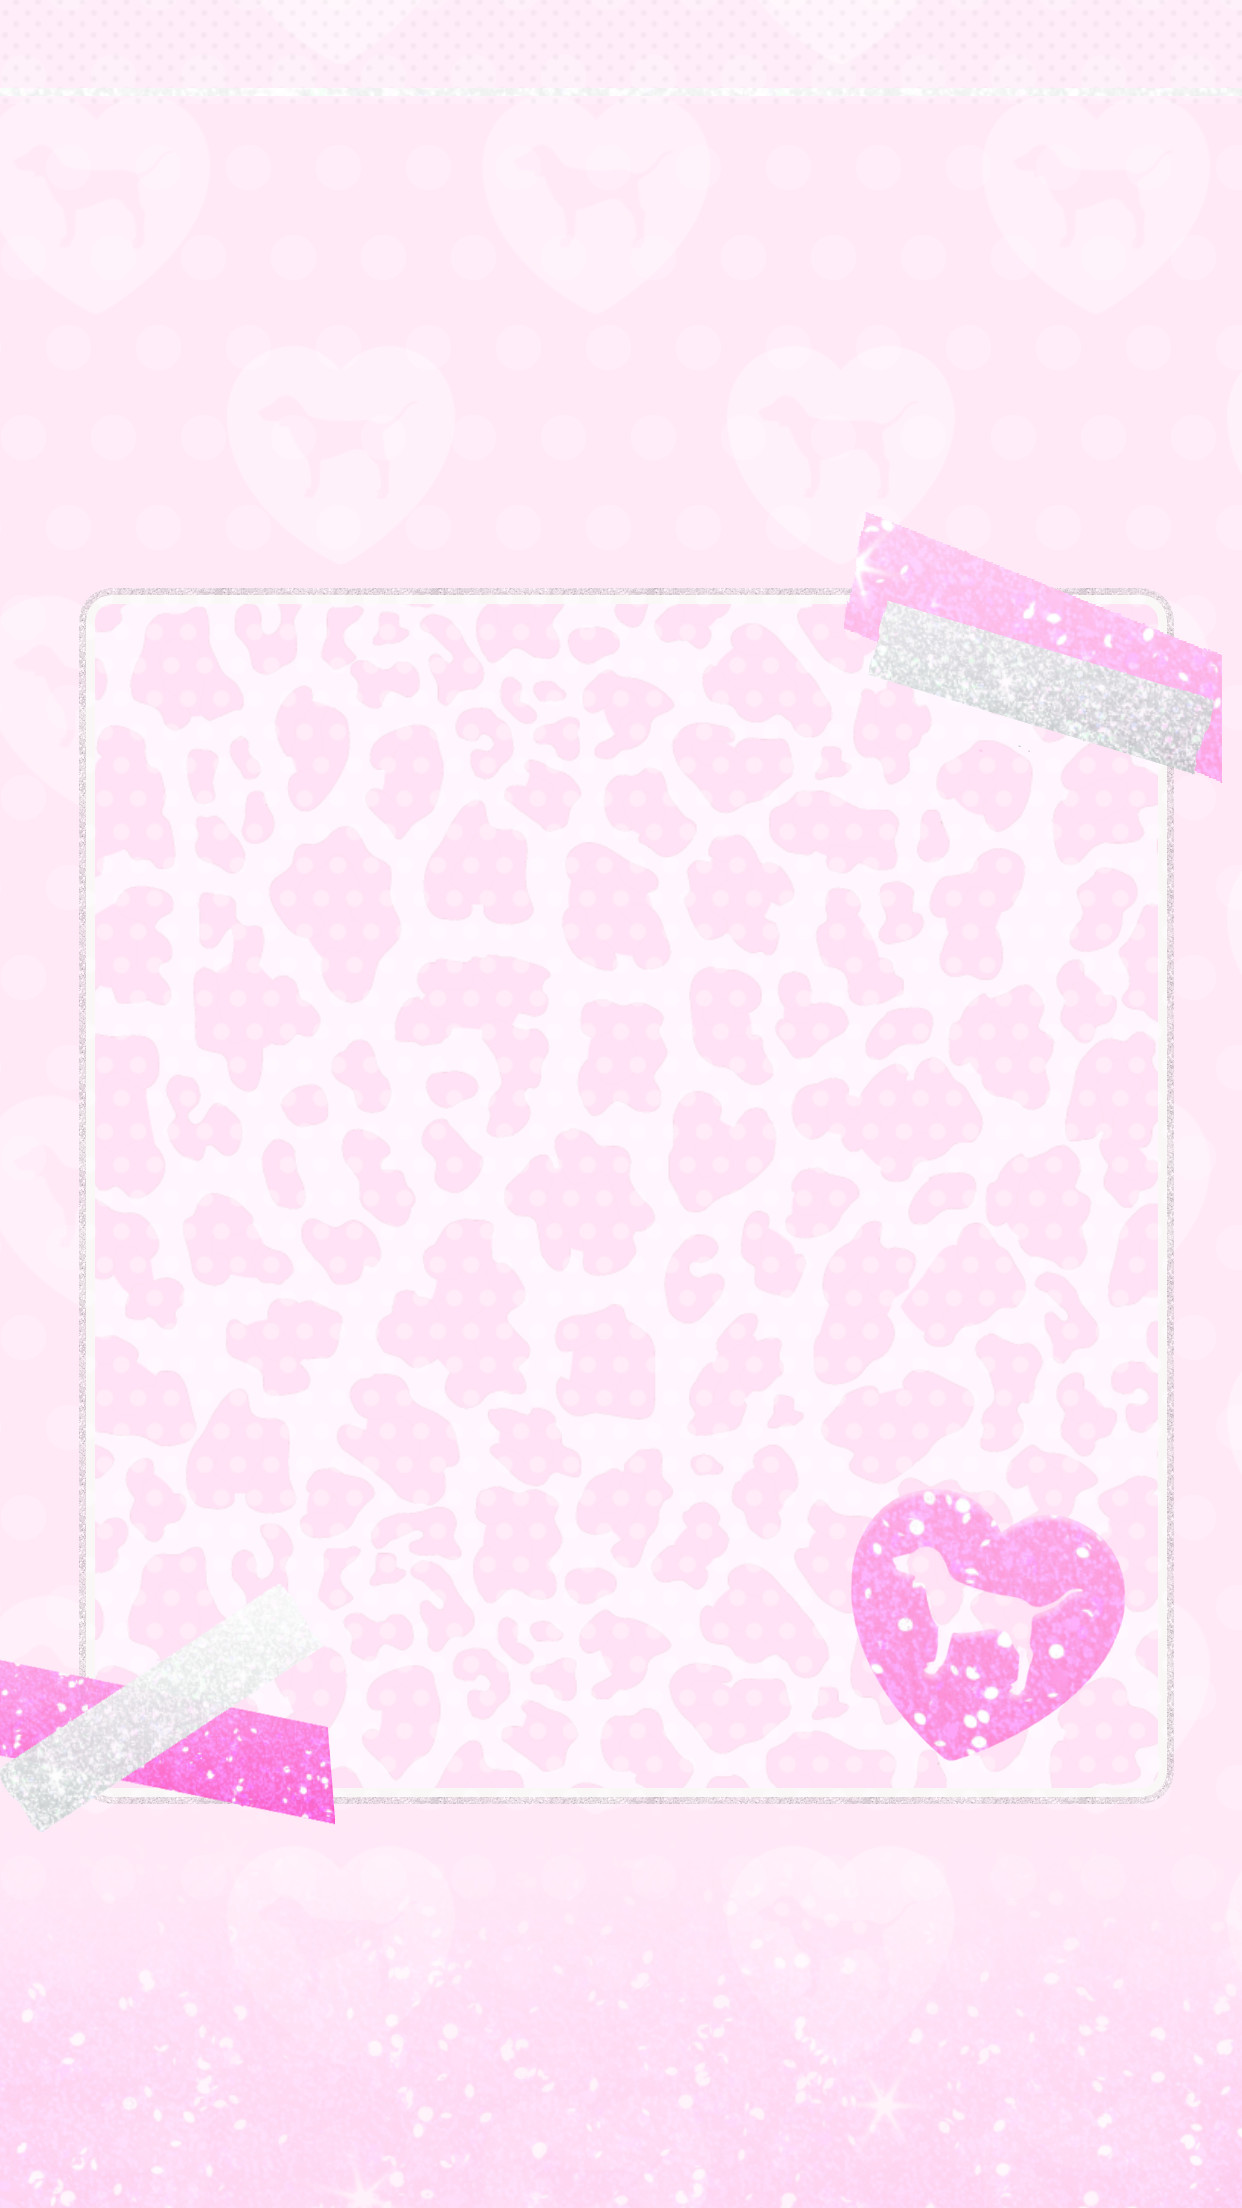 Cute Wallpapers, Phone Wallpapers, Iphone 6, Girly, Walls, Wallpapers, Paper